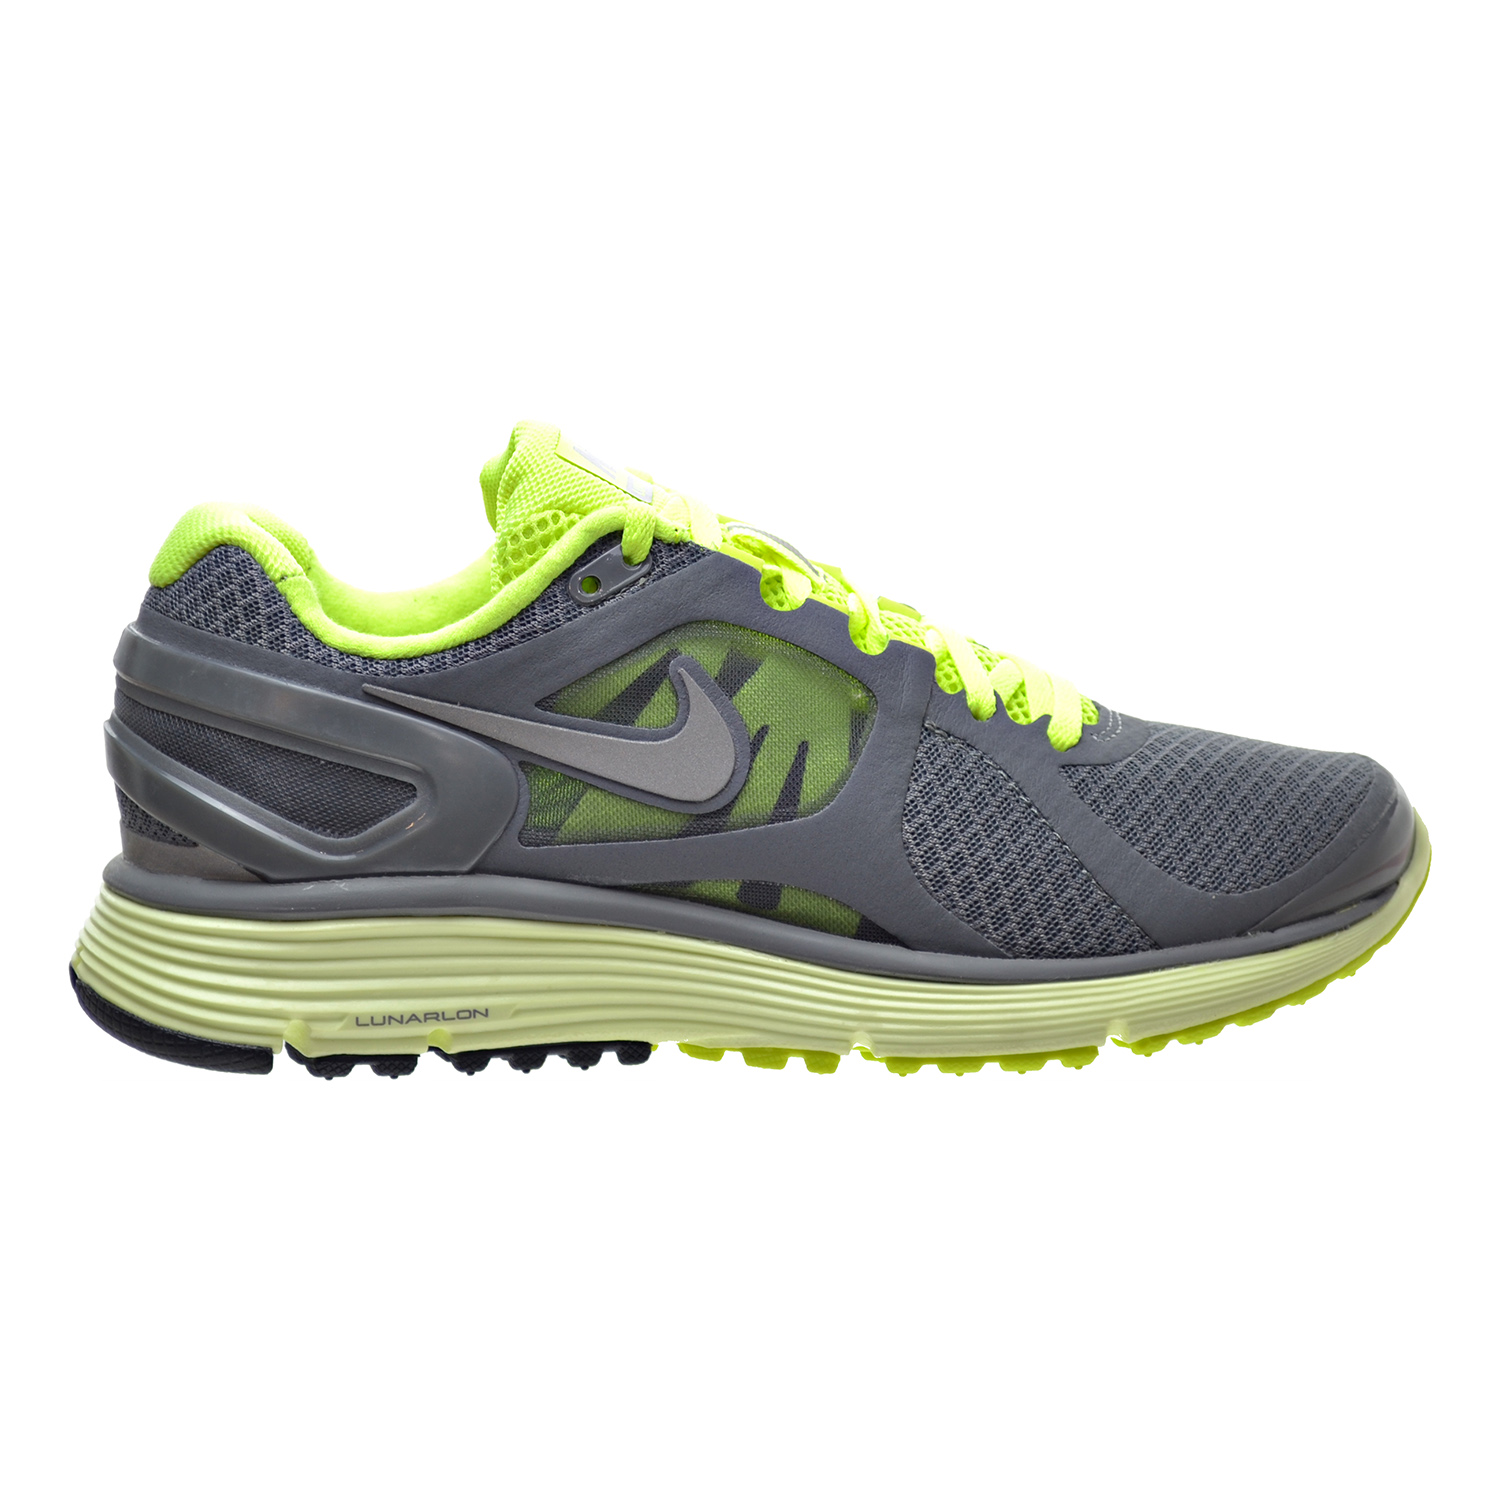 Nike Shoes With Memory Foam Insole Women S